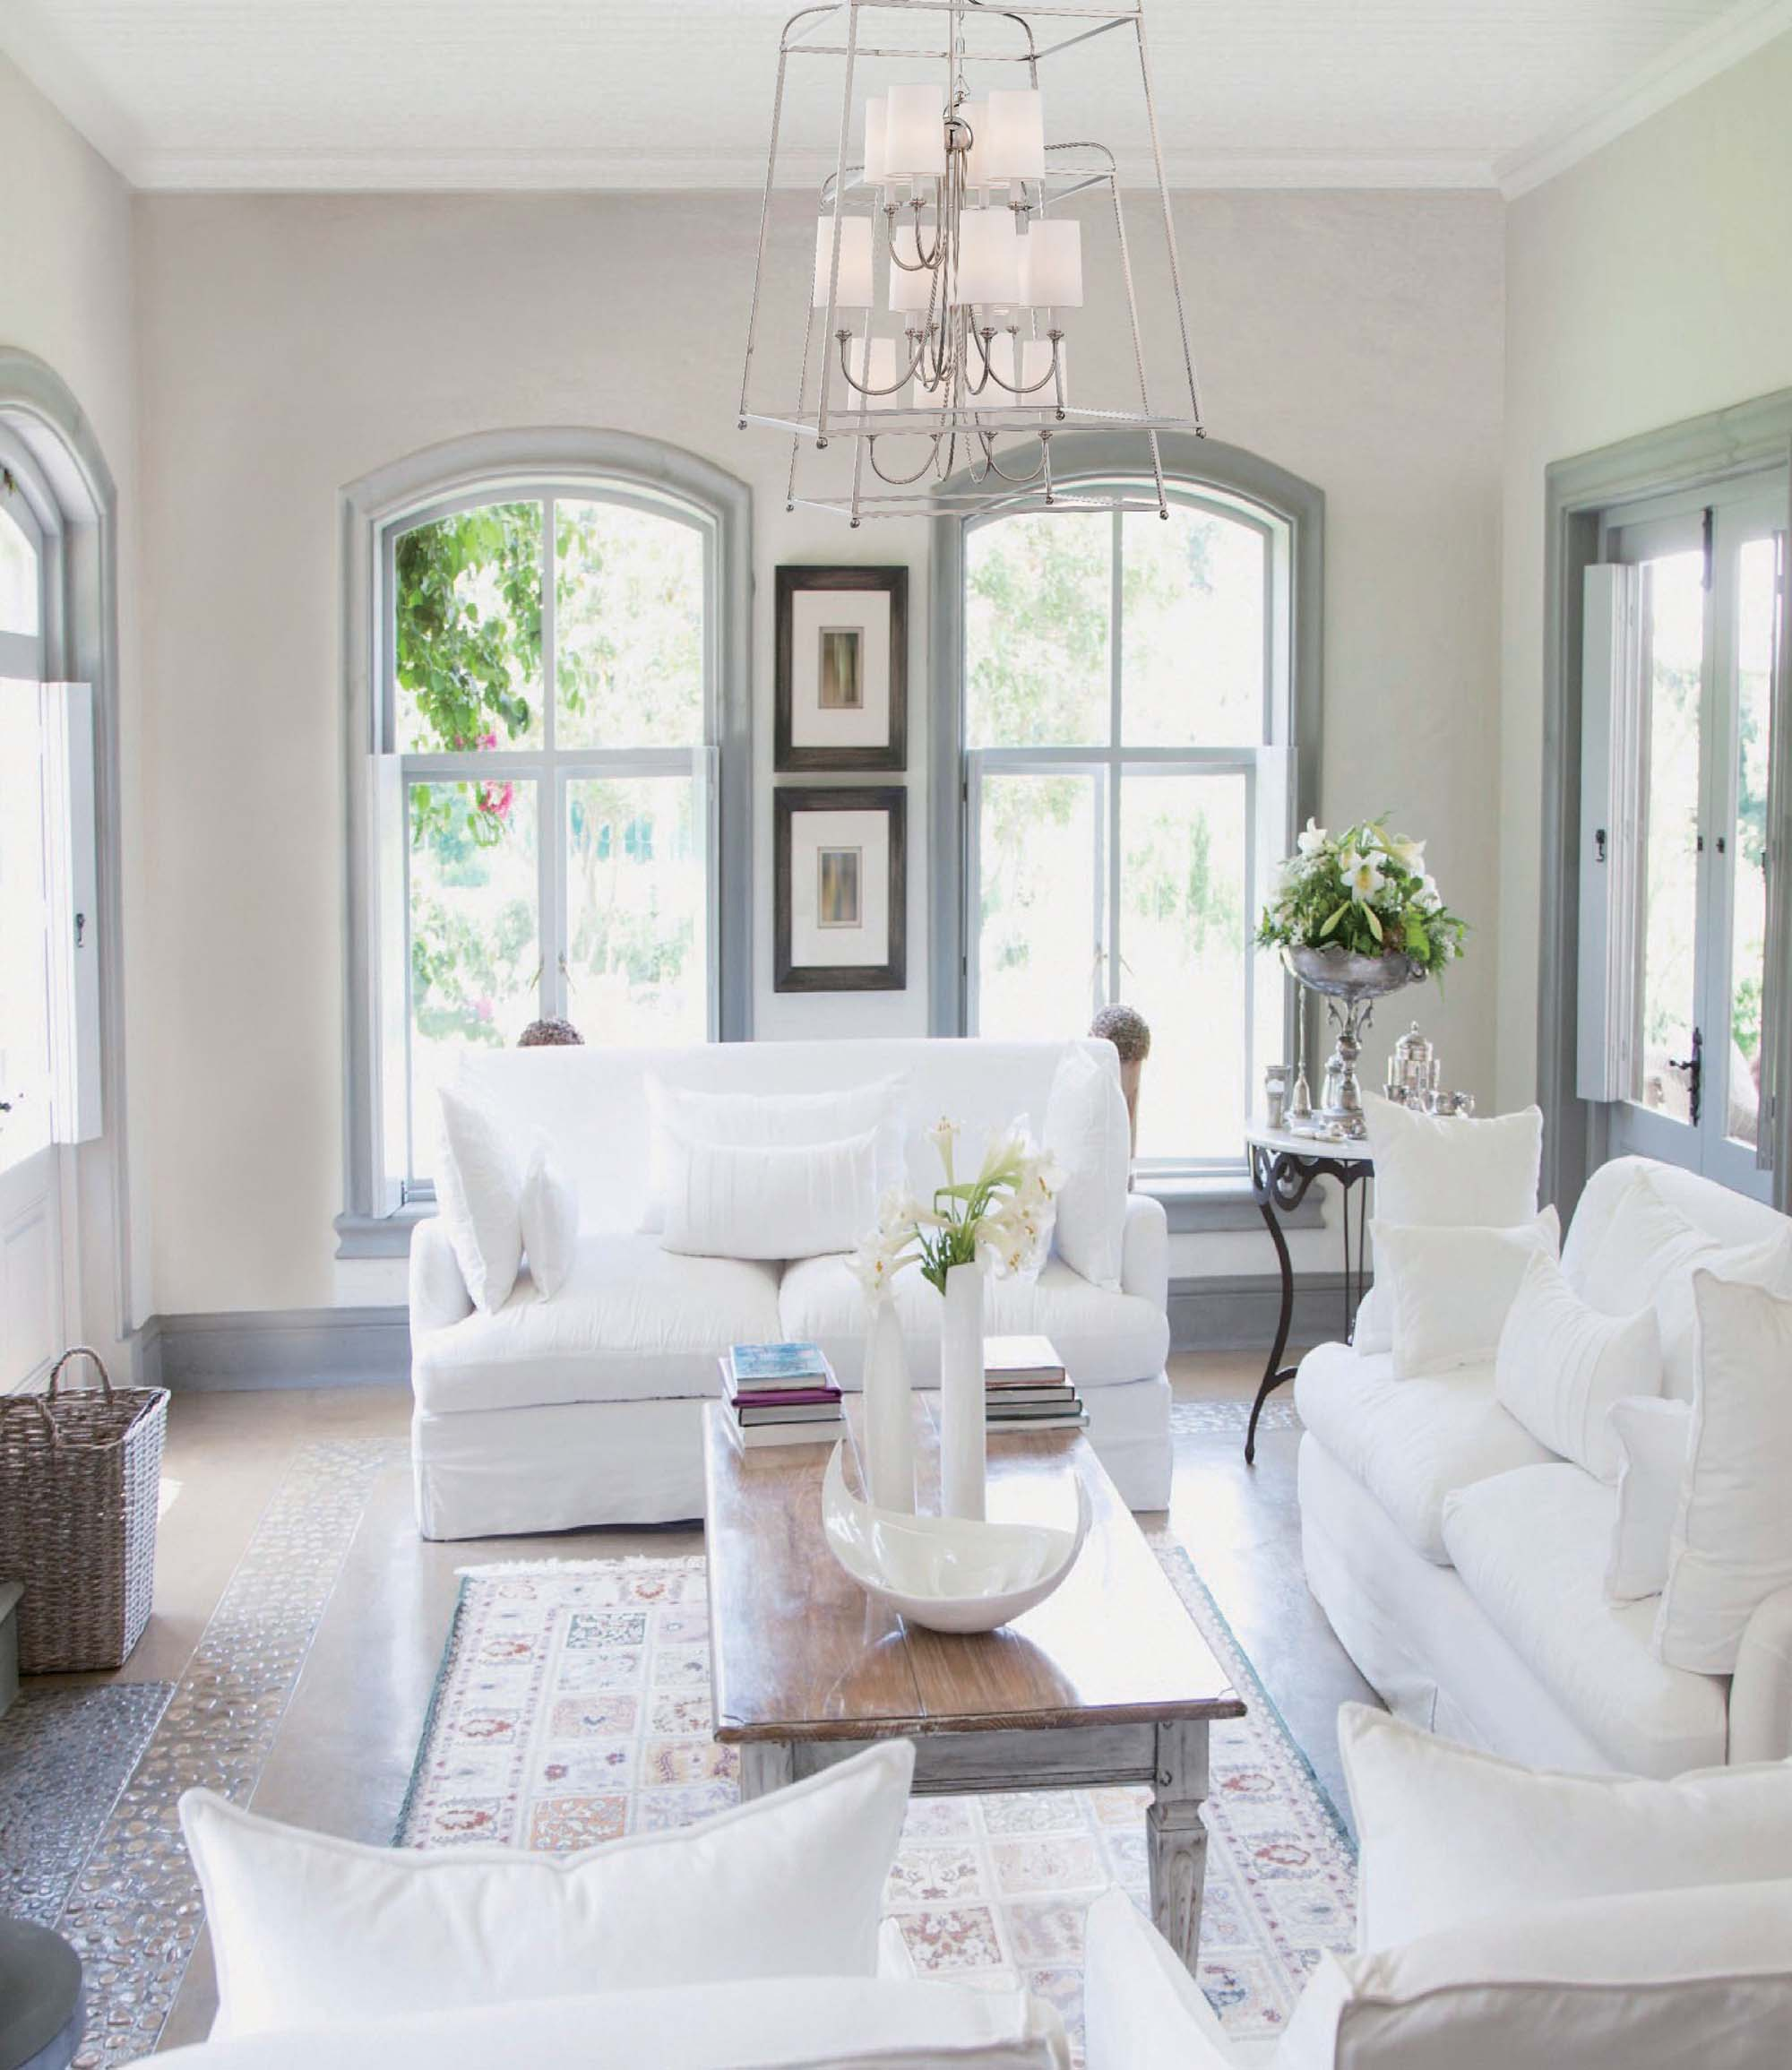 all white room ideas living room with all white theme light blue secondary color arched windows Gambrick Luxury Home Builder NJ